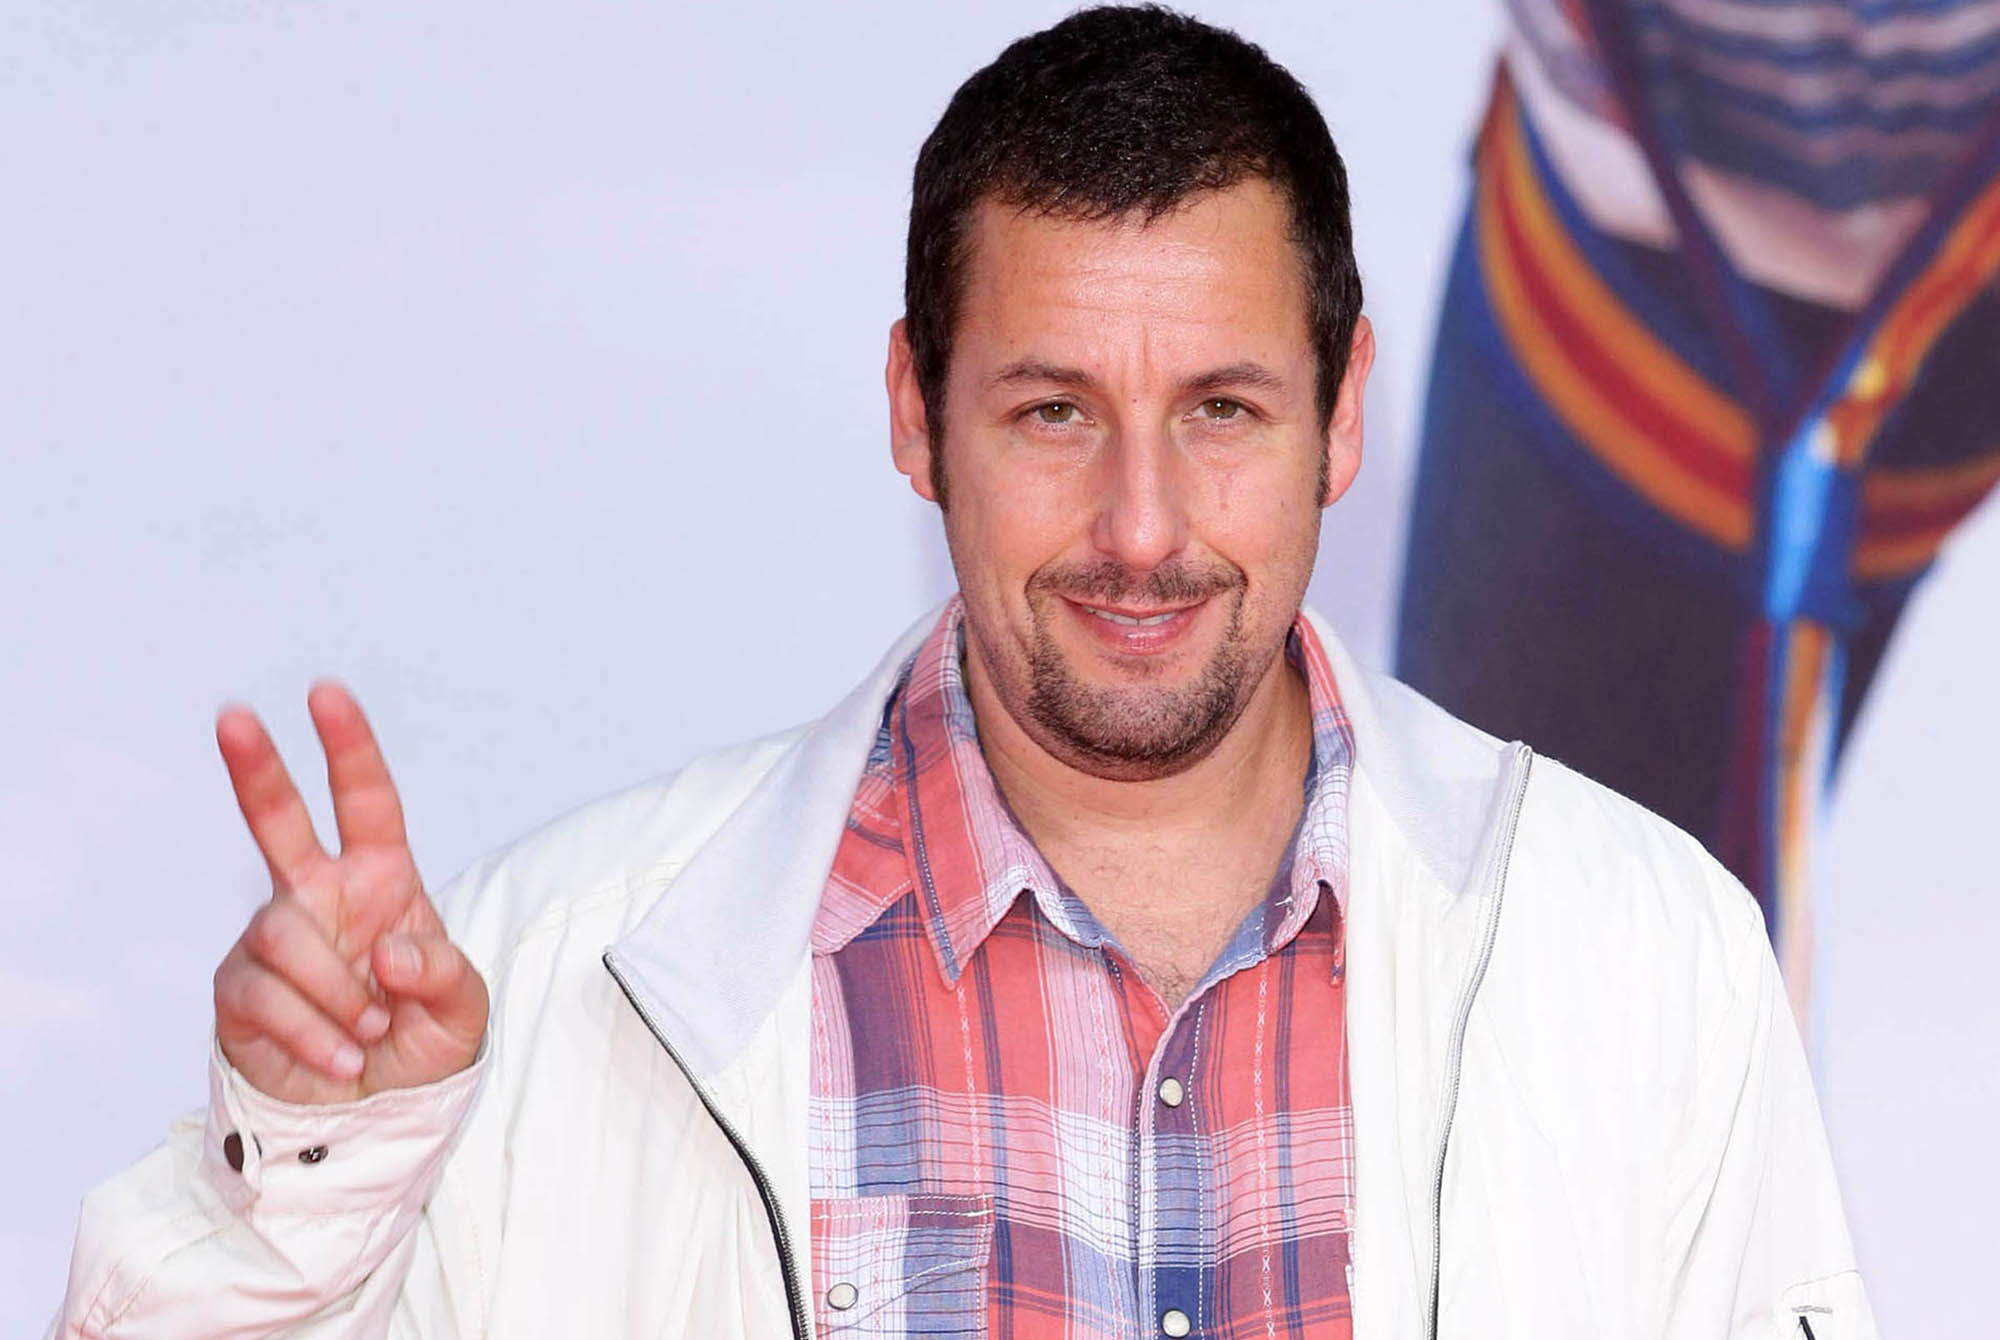 adam sandler newsadam sandler films, adam sandler movies, adam sandler dead, adam sandler wiki, adam sandler умер, adam sandler фильмы, adam sandler filmek, adam sandler 2017, adam sandler filme, adam sandler net worth, adam sandler wife, adam sandler 2016, adam sandler height, adam sandler instagram, adam sandler news, adam sandler biography, adam sandler imdb, adam sandler filmebi, adam sandler filmleri, adam sandler wikipédia